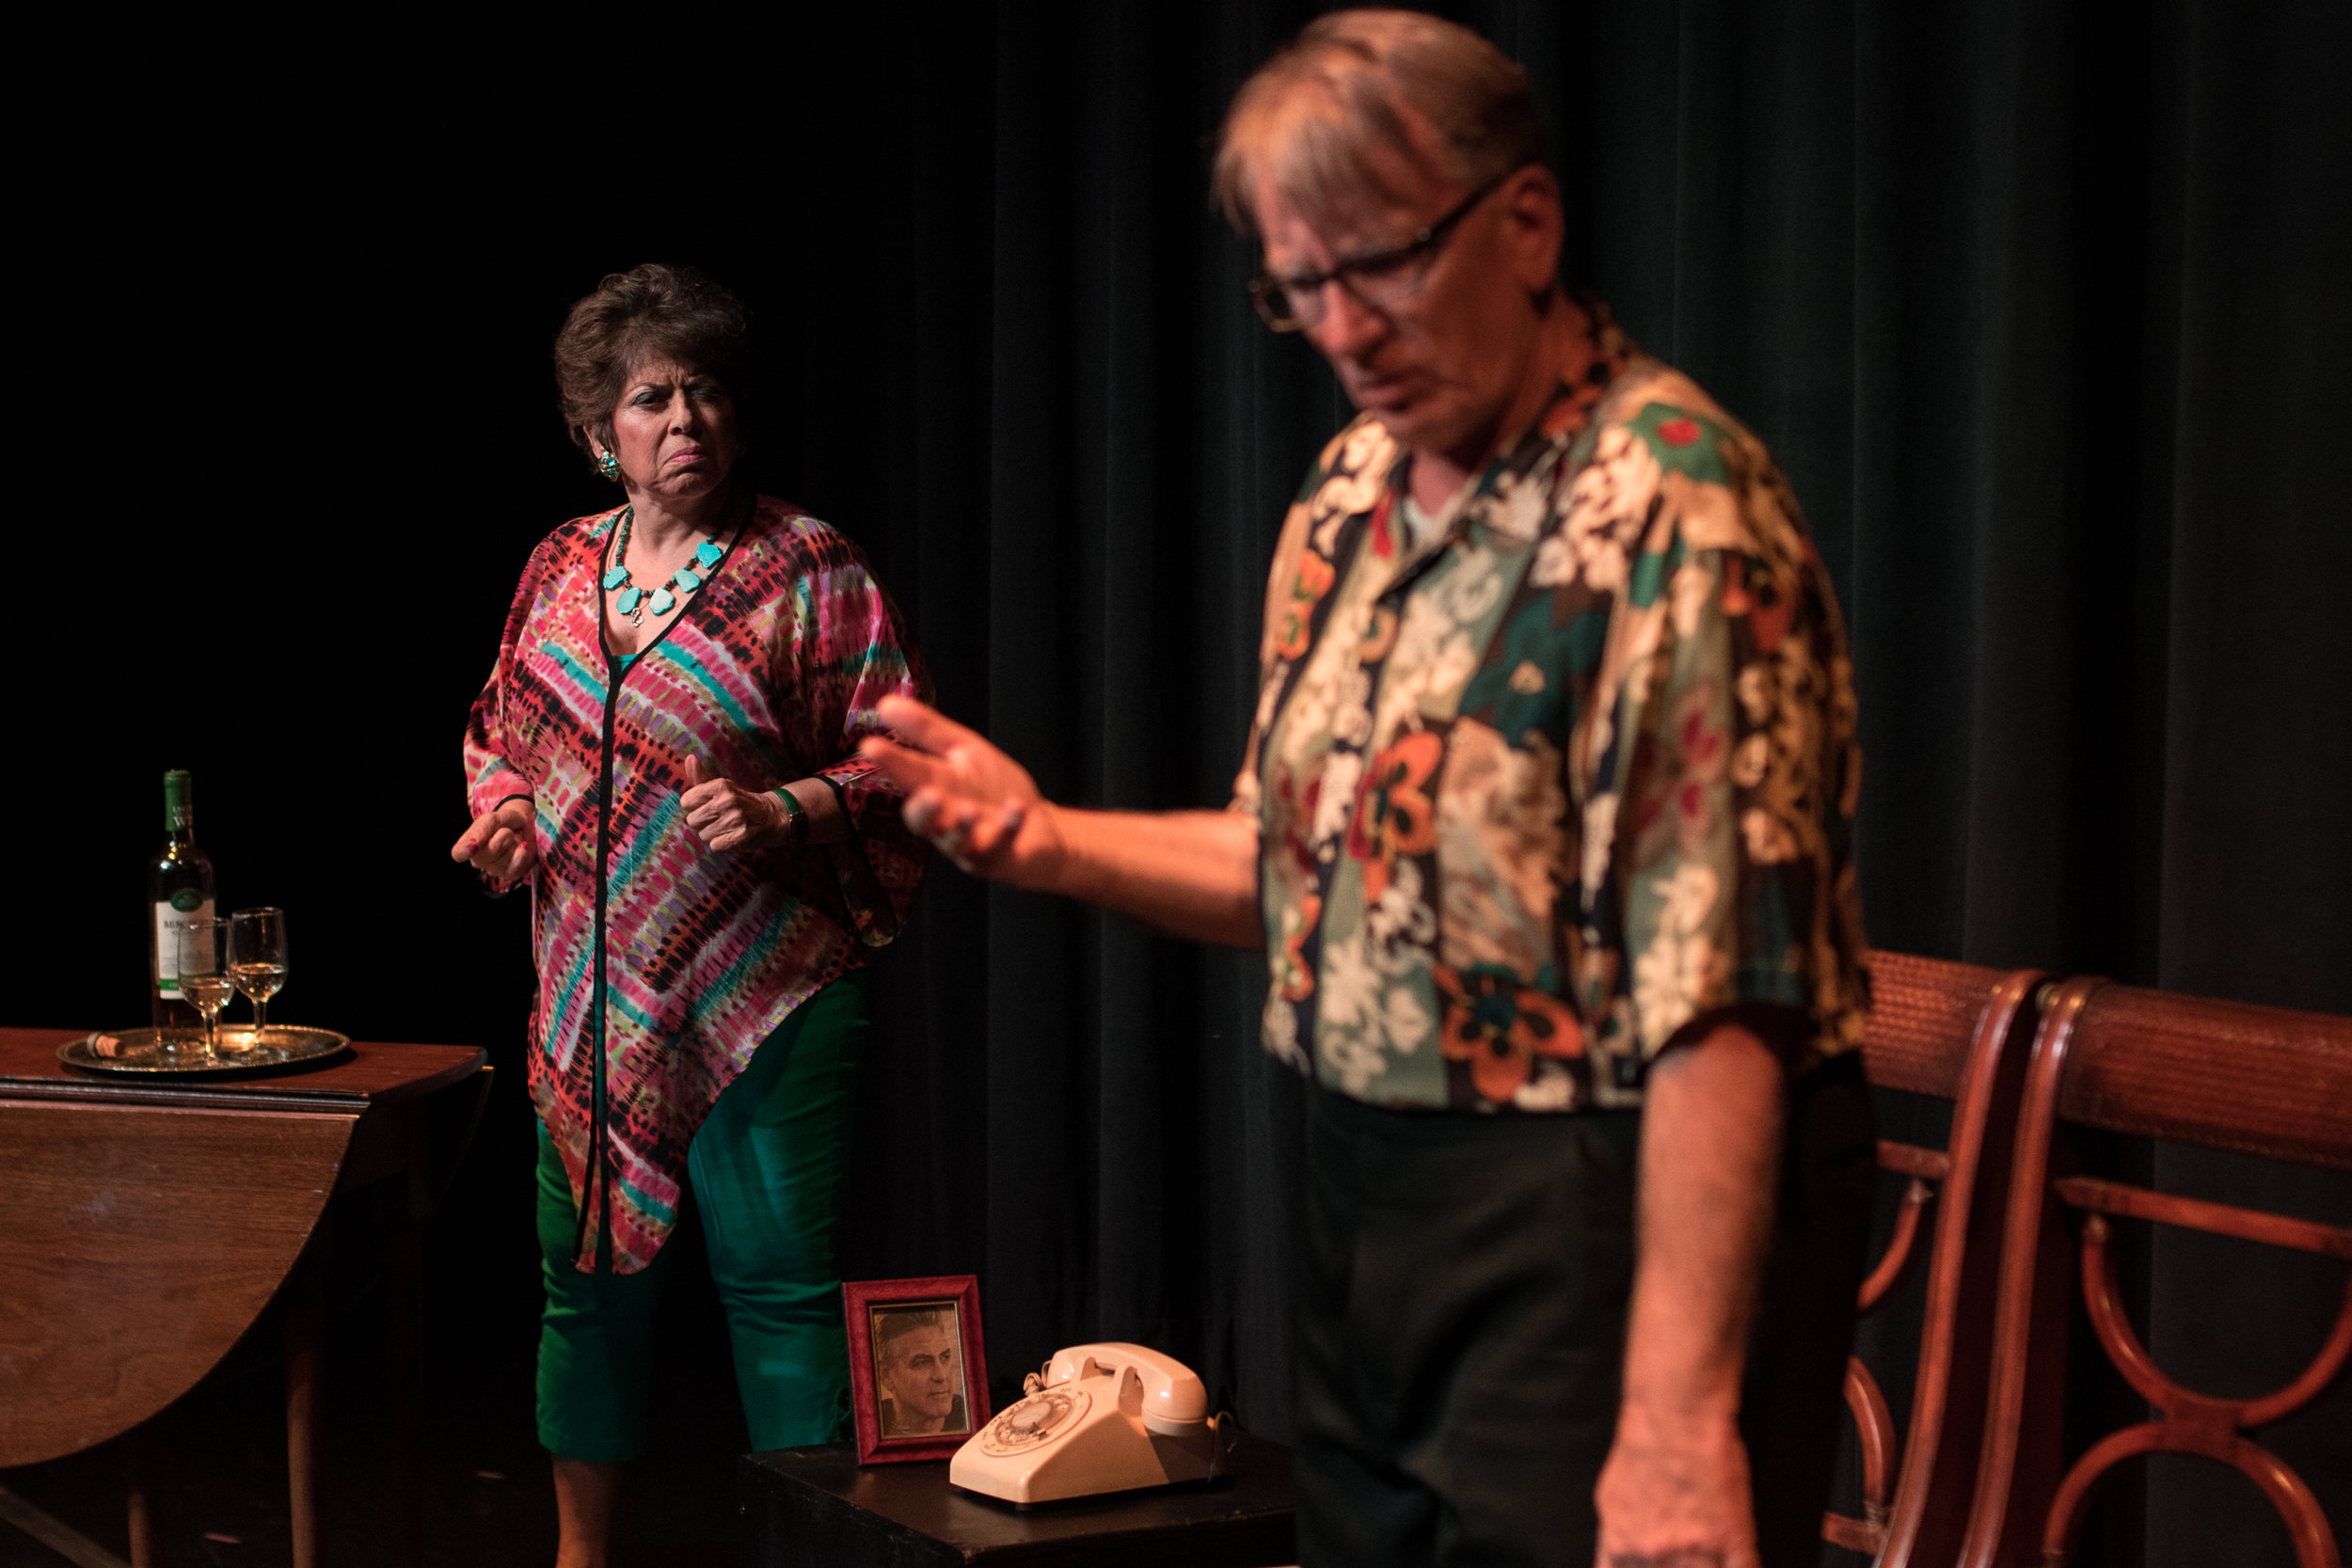 The Bennett TheatreLab & Conservatory: Festival of Plays, 2018 Sher Ribas Bloom & John Muller